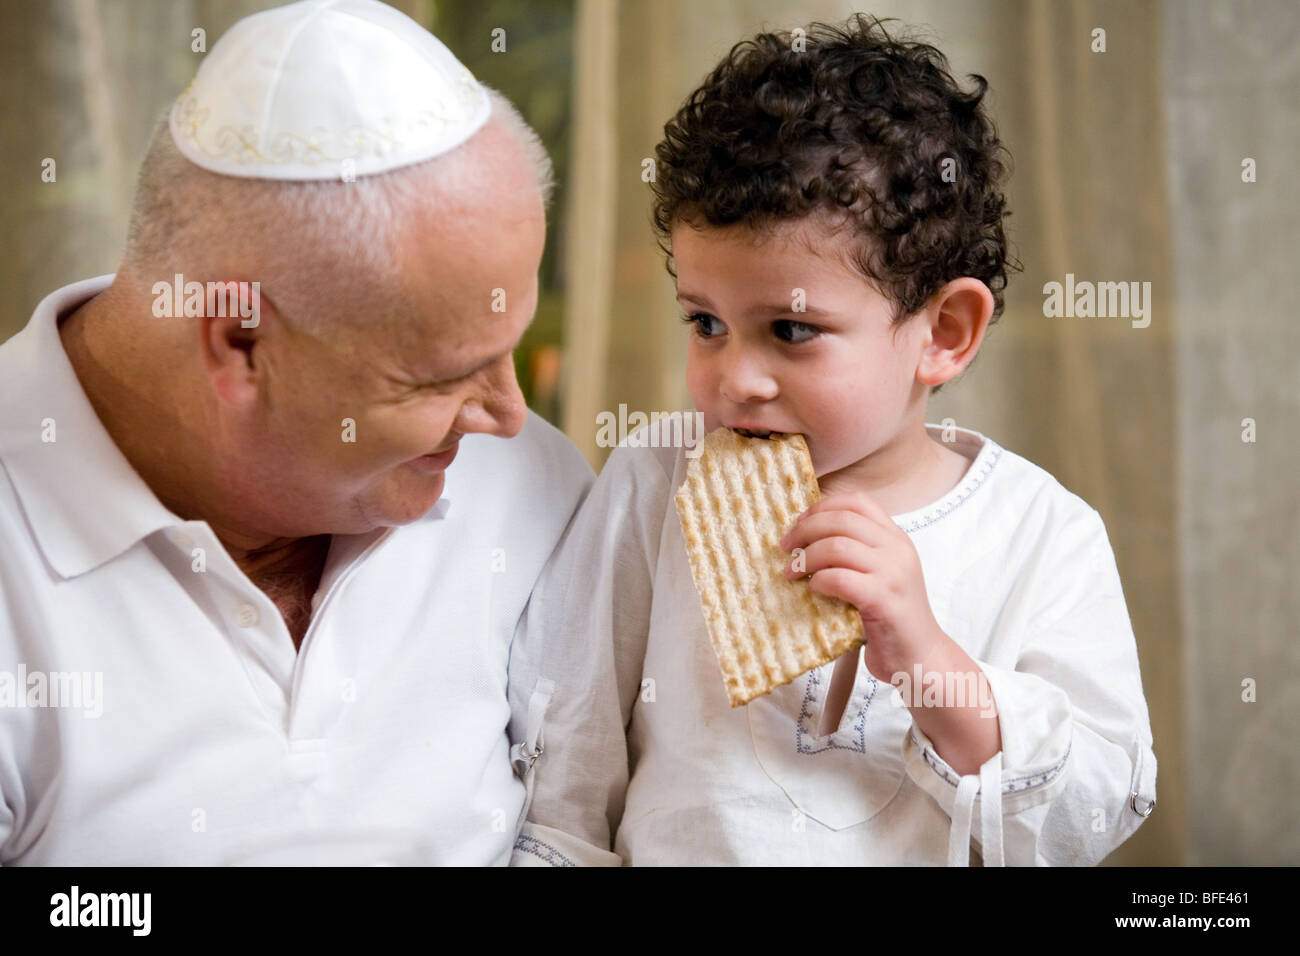 Child eating Matzah. - Stock Image